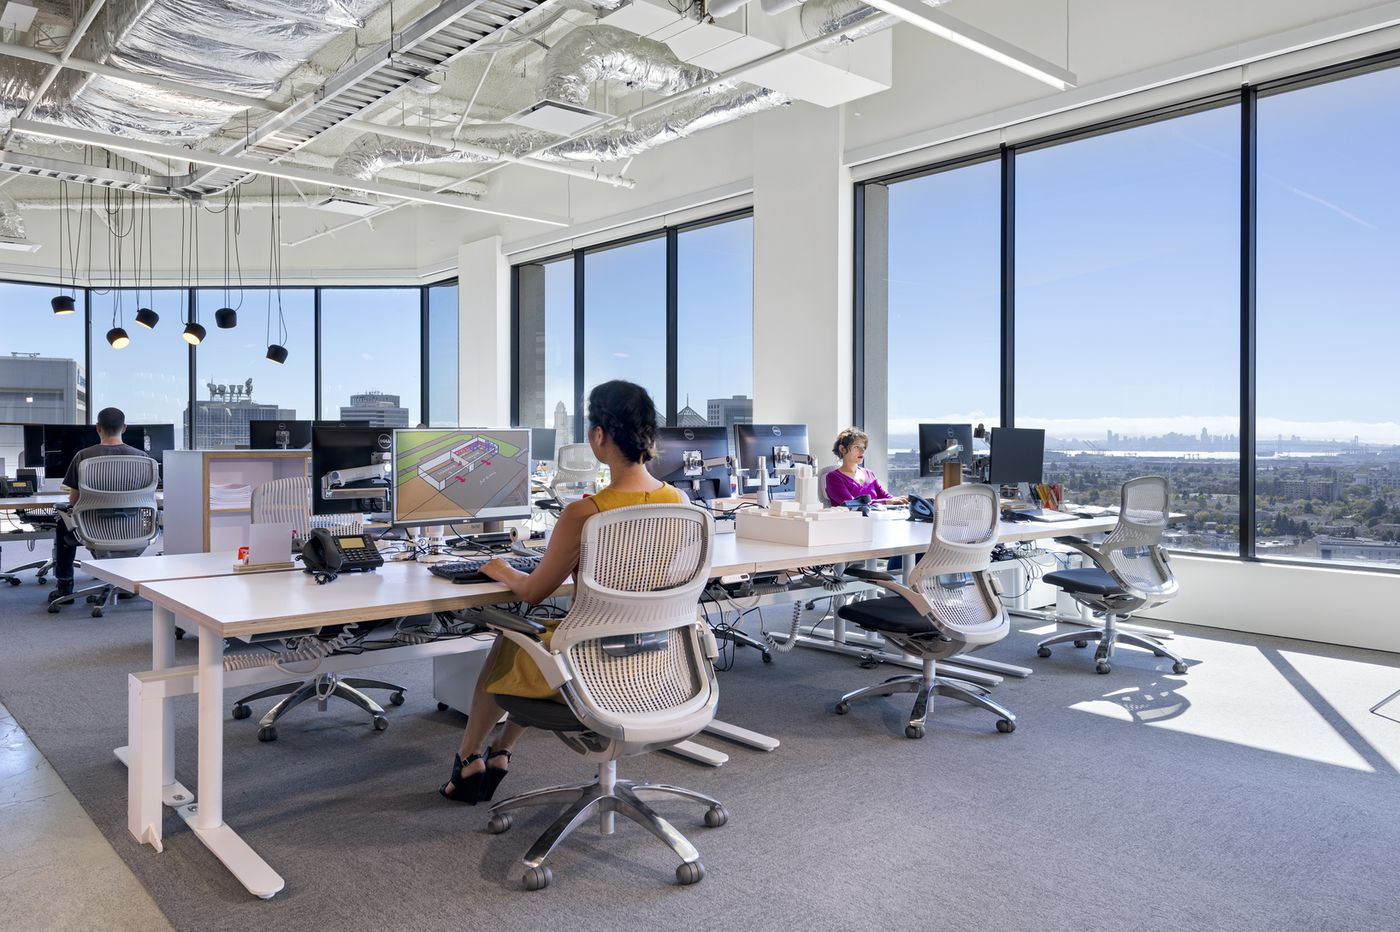 Employees utilizing their open floor plan to operate their business